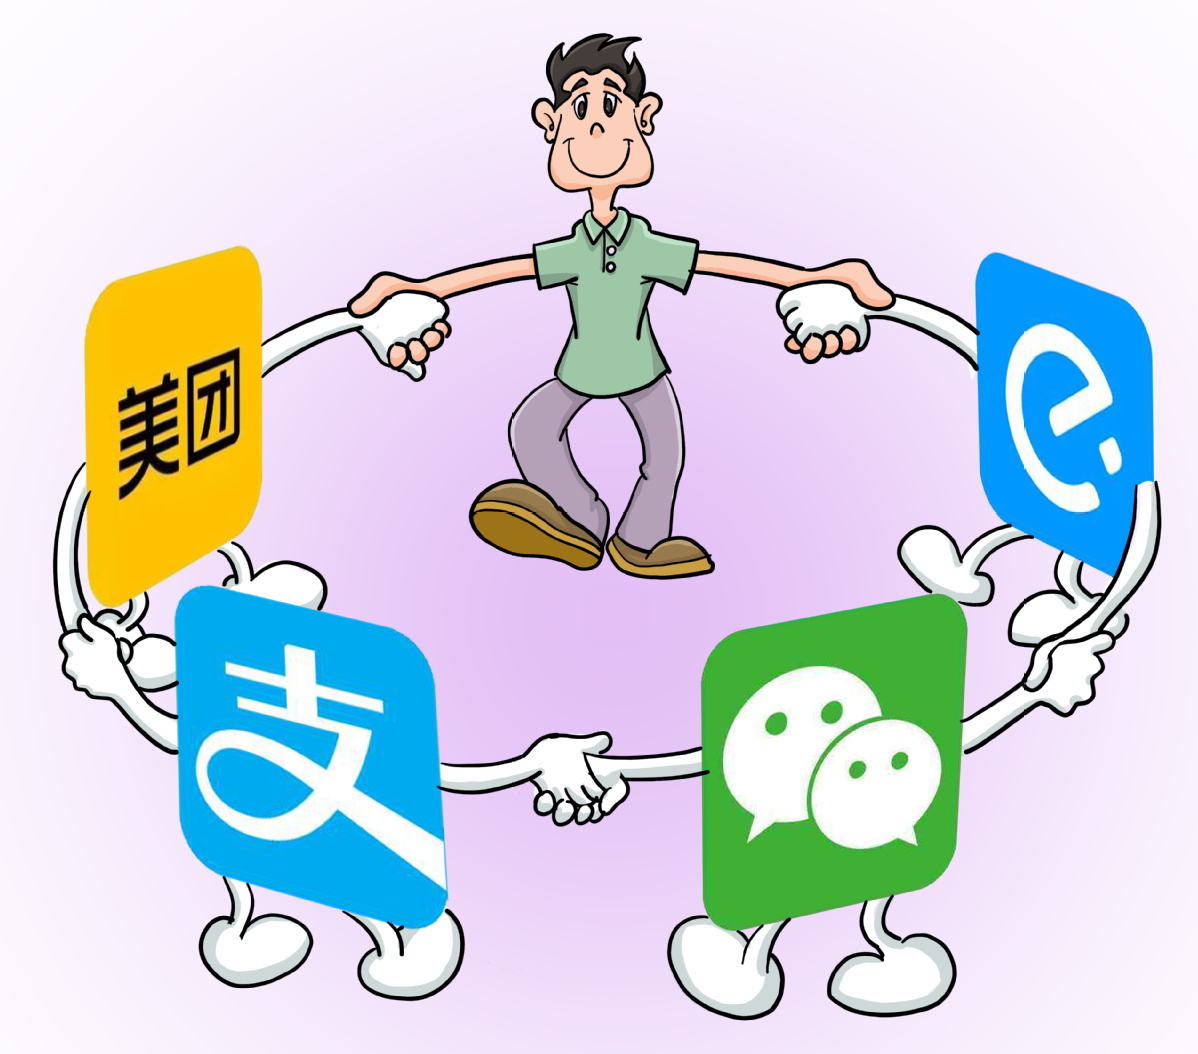 China needs to strengthen its anti-data monopoly measures